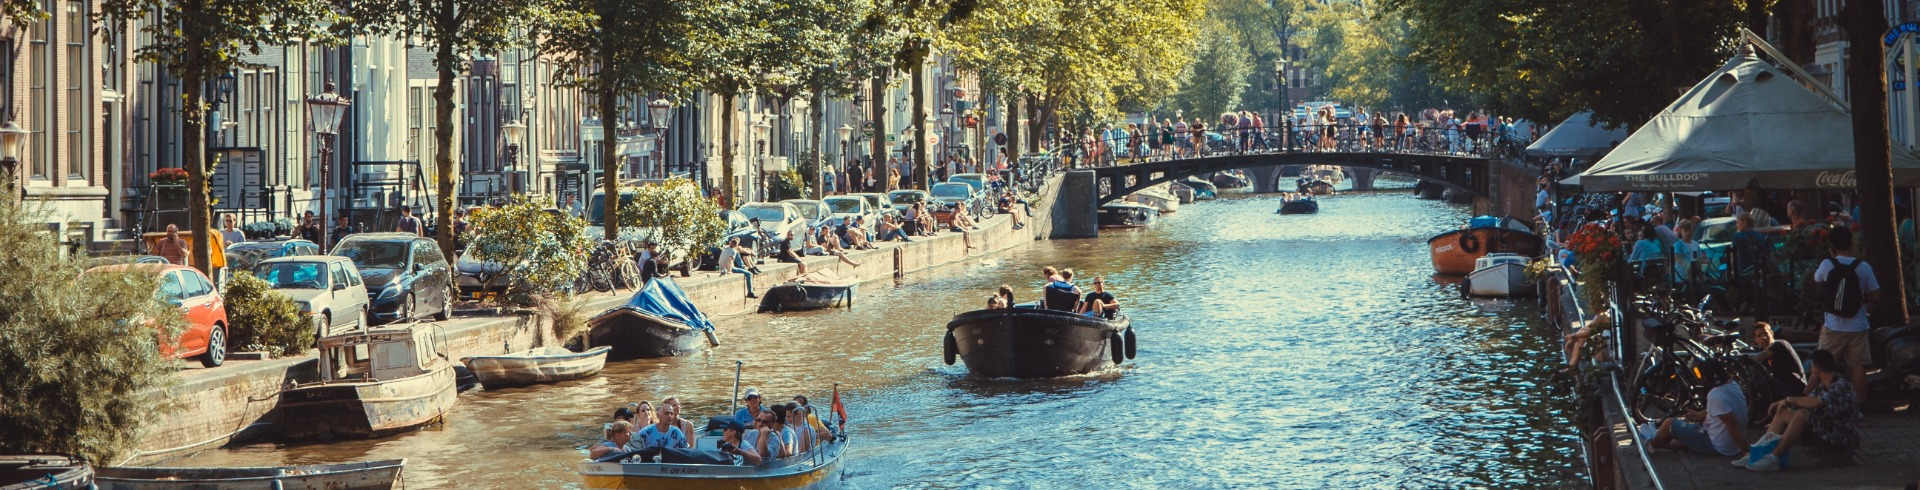 amsterdam canals with boats